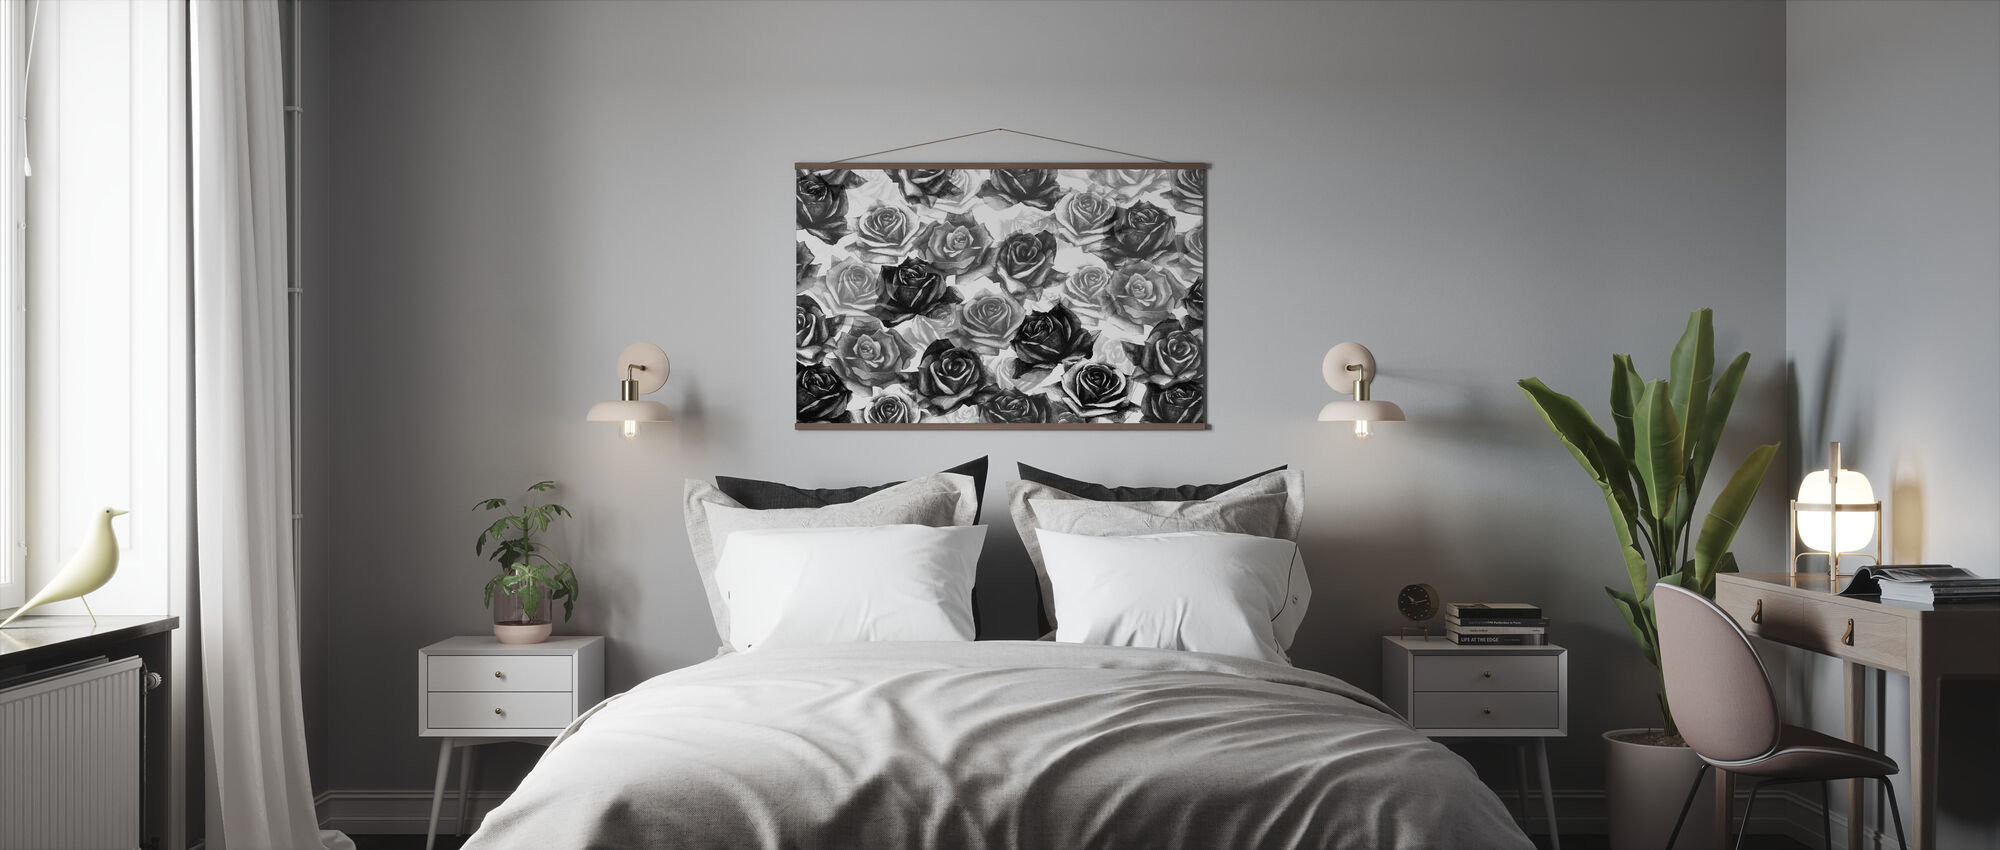 My Black Roses - Poster - Bedroom